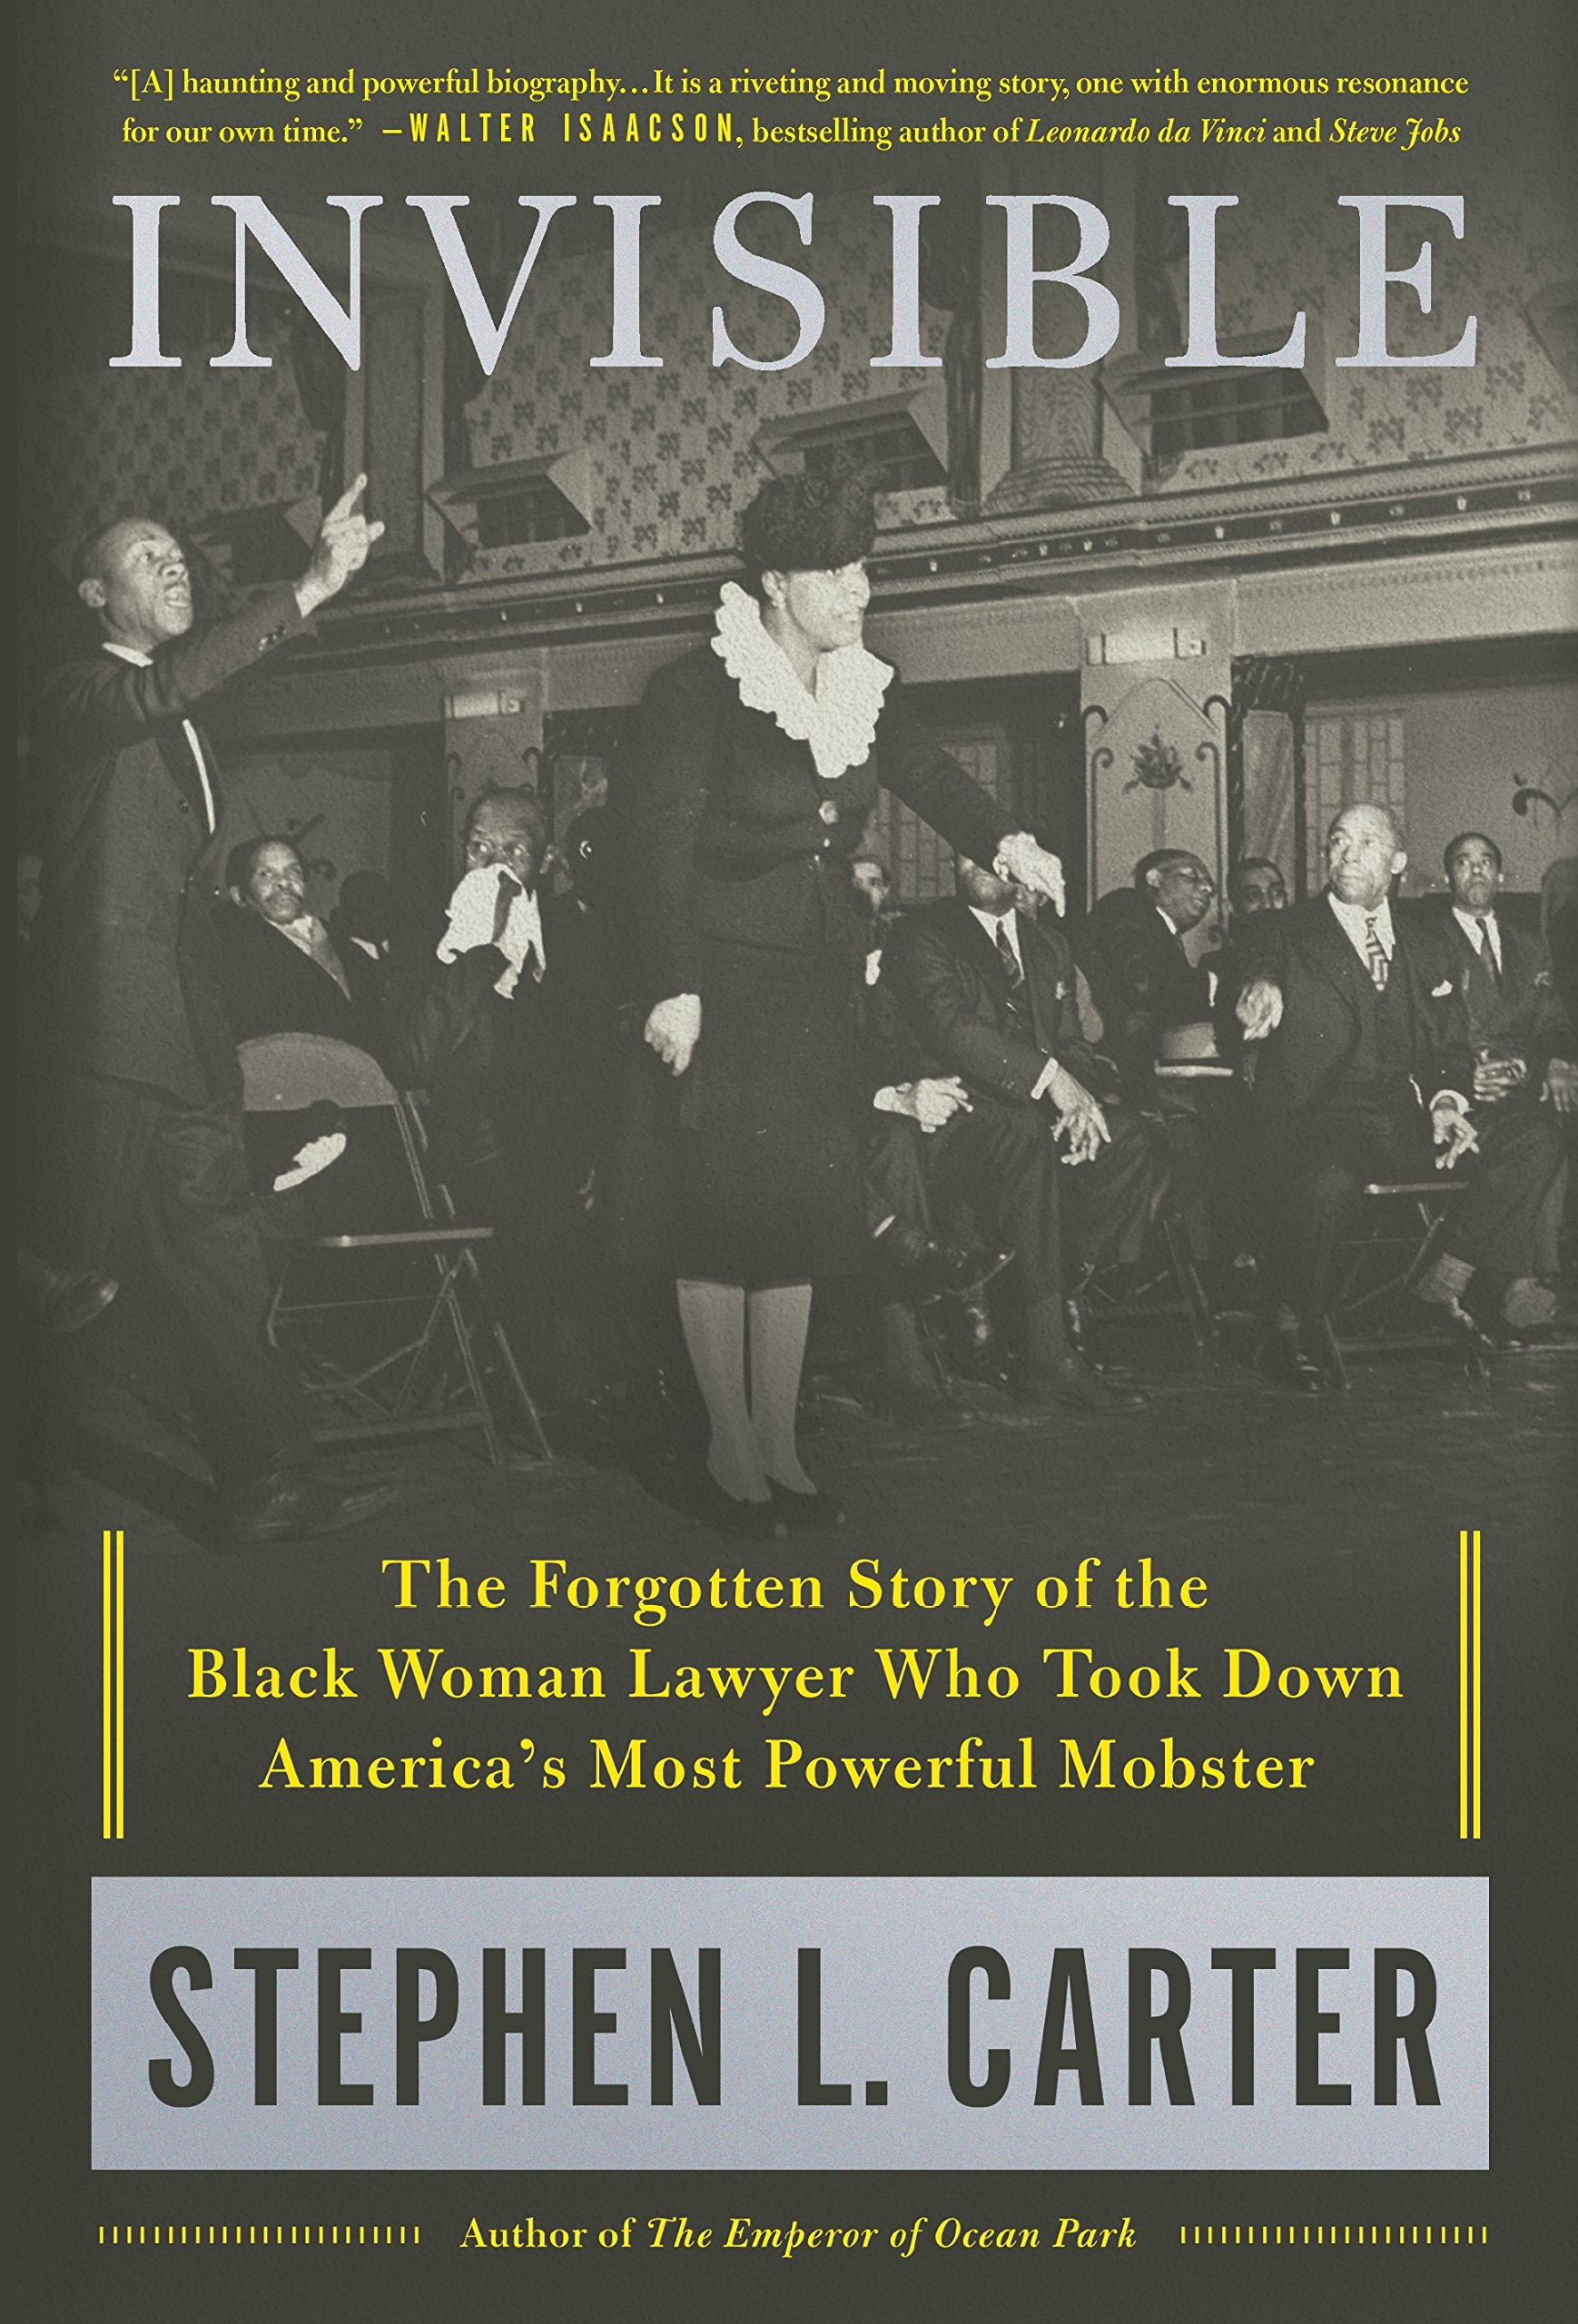 Invisible: The Forgotten Story of the Black Woman Lawyer Who